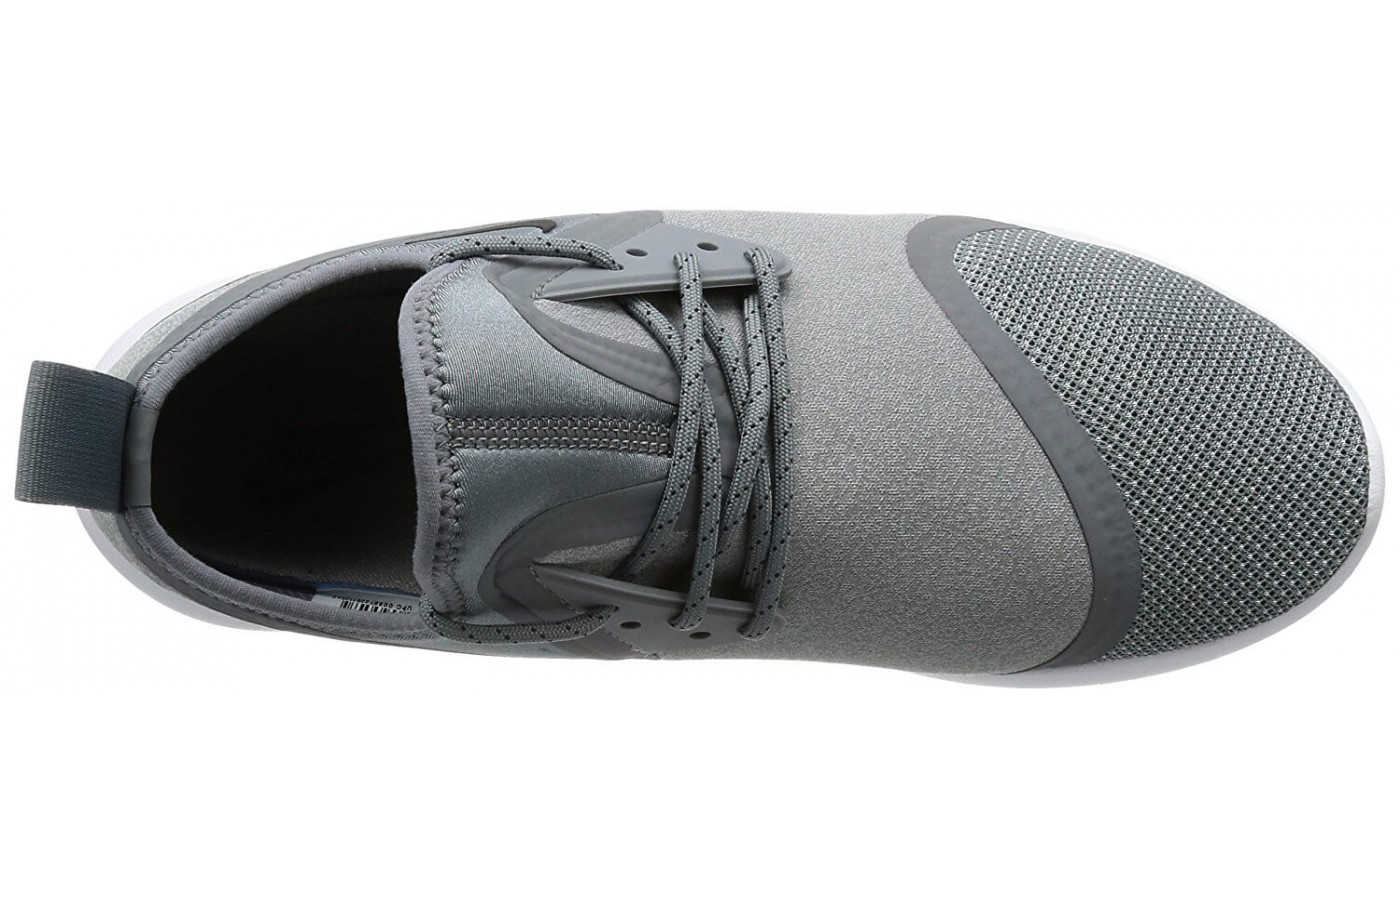 e571849004 The Nike LunarCharge Essential has a highly breathable but less protective  upper.